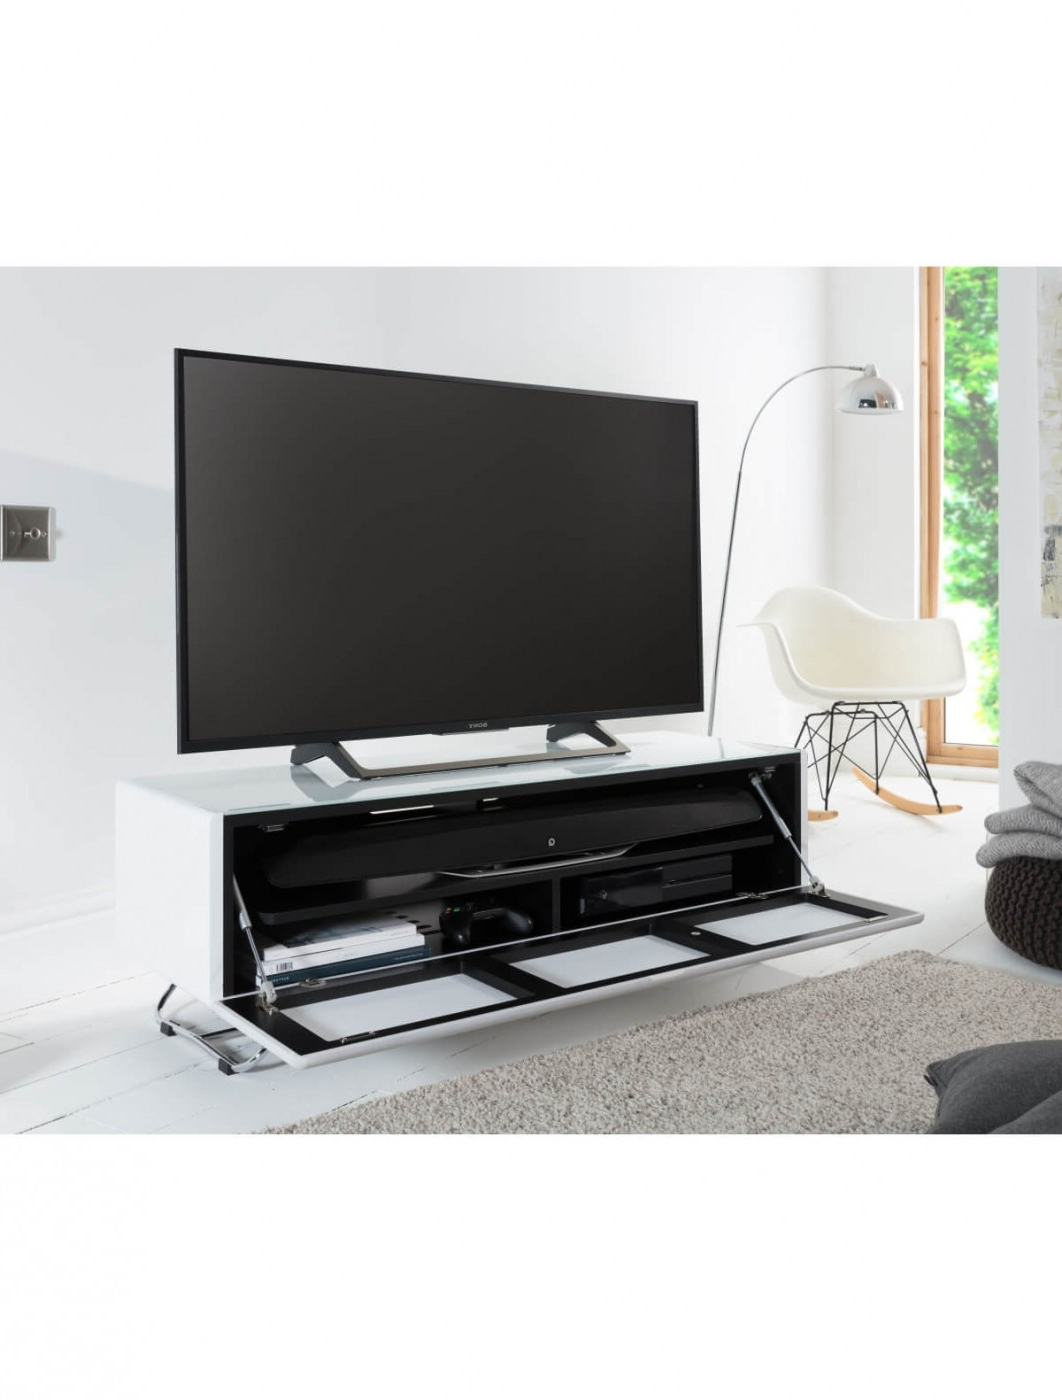 Newest Tv Stand White Chromium Concept 1200mm Cro2 1200cpt Wh Pertaining To Chromium Tv Stands (View 7 of 25)